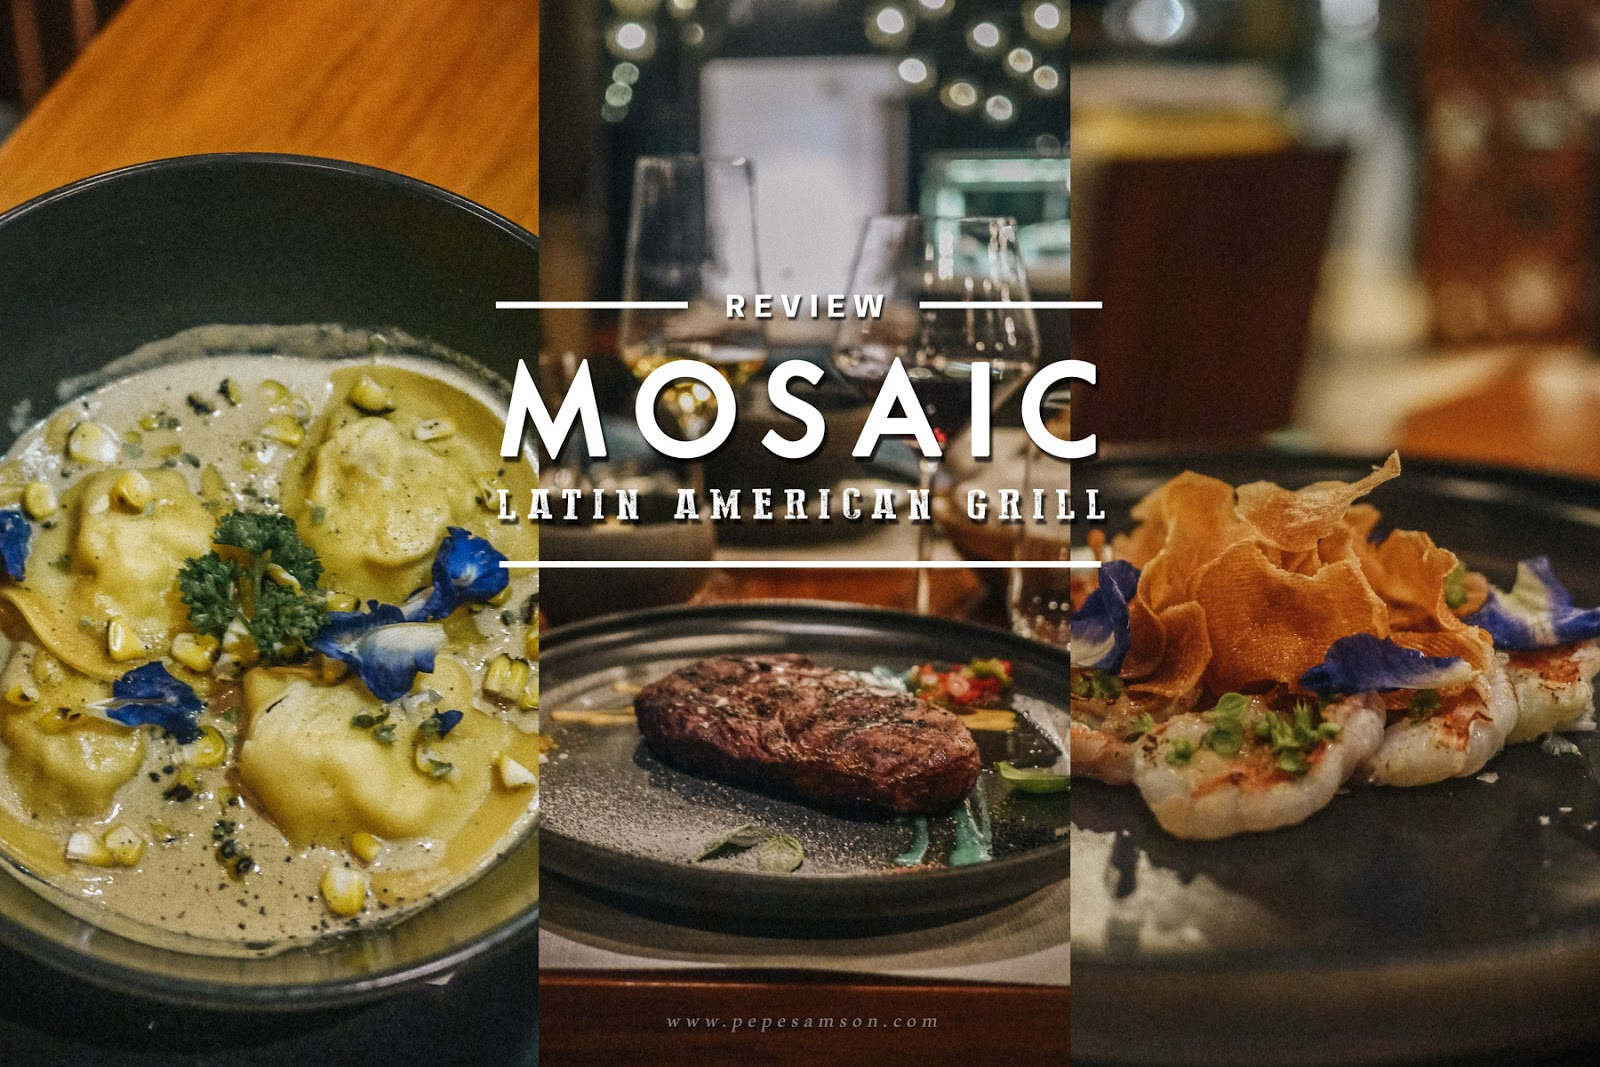 Mosaic Latin American Grill in Boracay Elevates the Island's Dining Scene